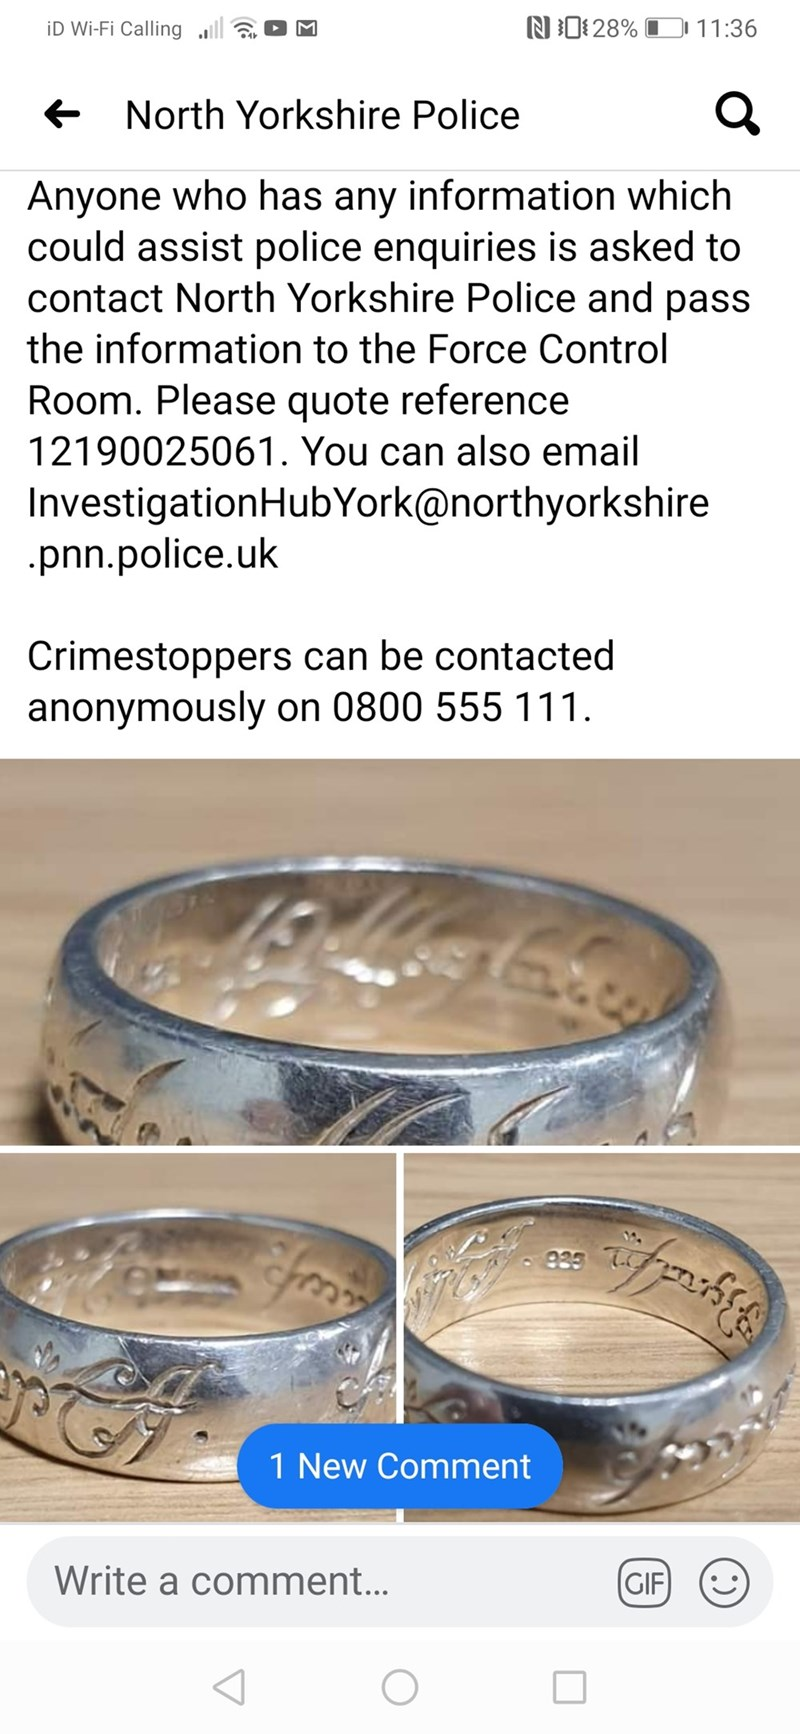 Metal - N0:28% O 11:36 iD Wi-Fi Calling all + North Yorkshire Police Anyone who has any information which could assist police enquiries is asked to contact North Yorkshire Police and pass the information to the Force Control Room. Please quote reference 12190025061. You can also email InvestigationHubYork@northyorkshire .pnn.police.uk Crimestoppers can be contacted anonymously on 0800 555 111. 235 1 New Comment Write a comment... (GIF